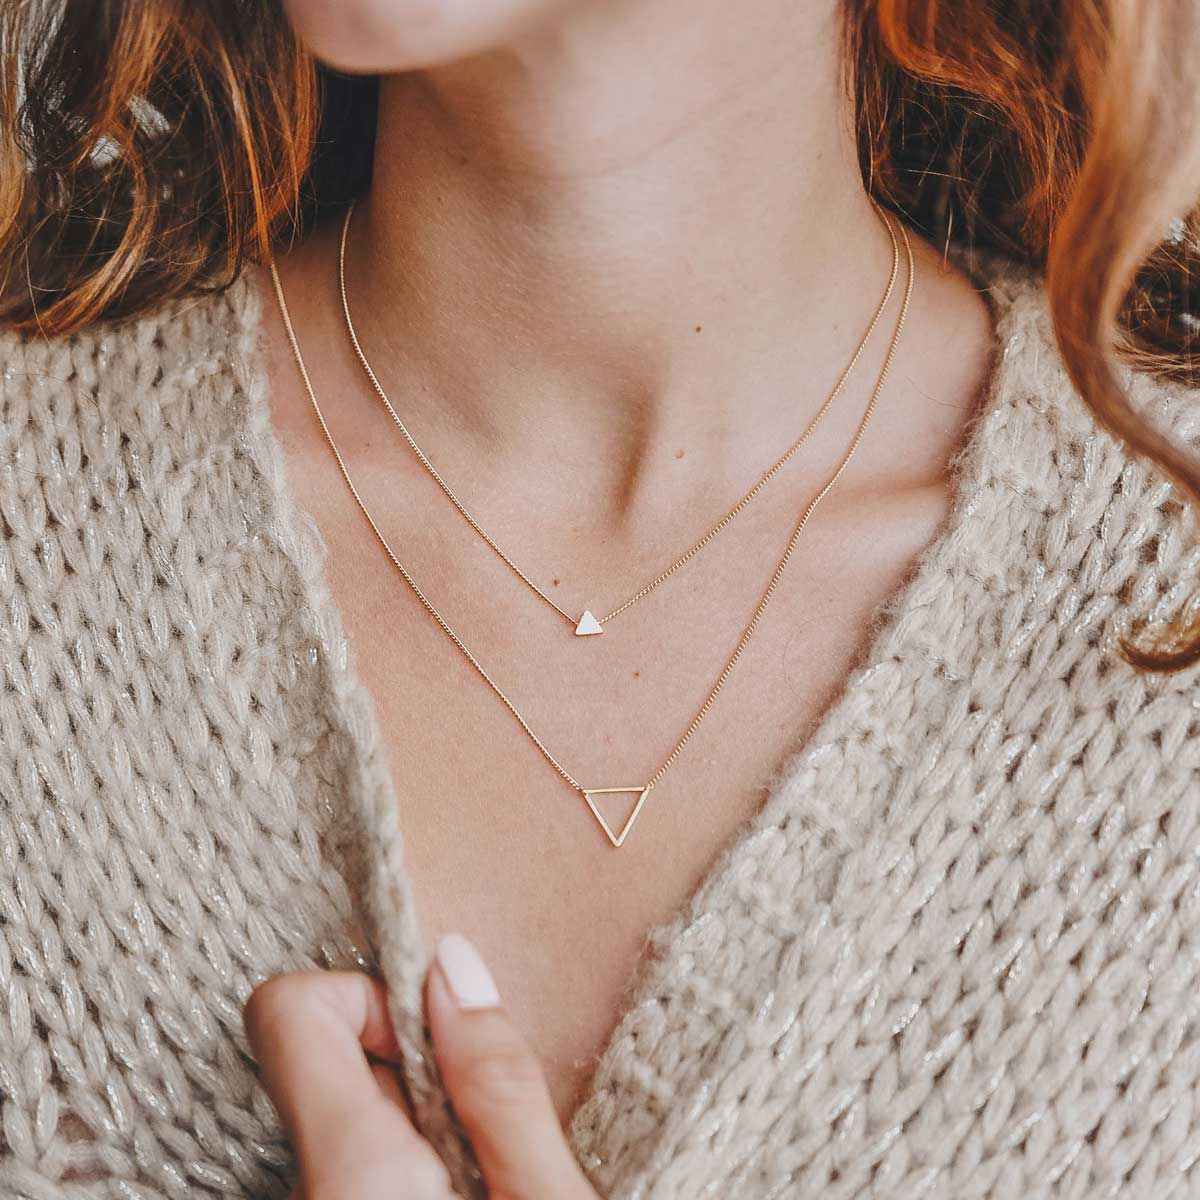 170265DOR Collier Triangle Doré Double Plein Et Vide